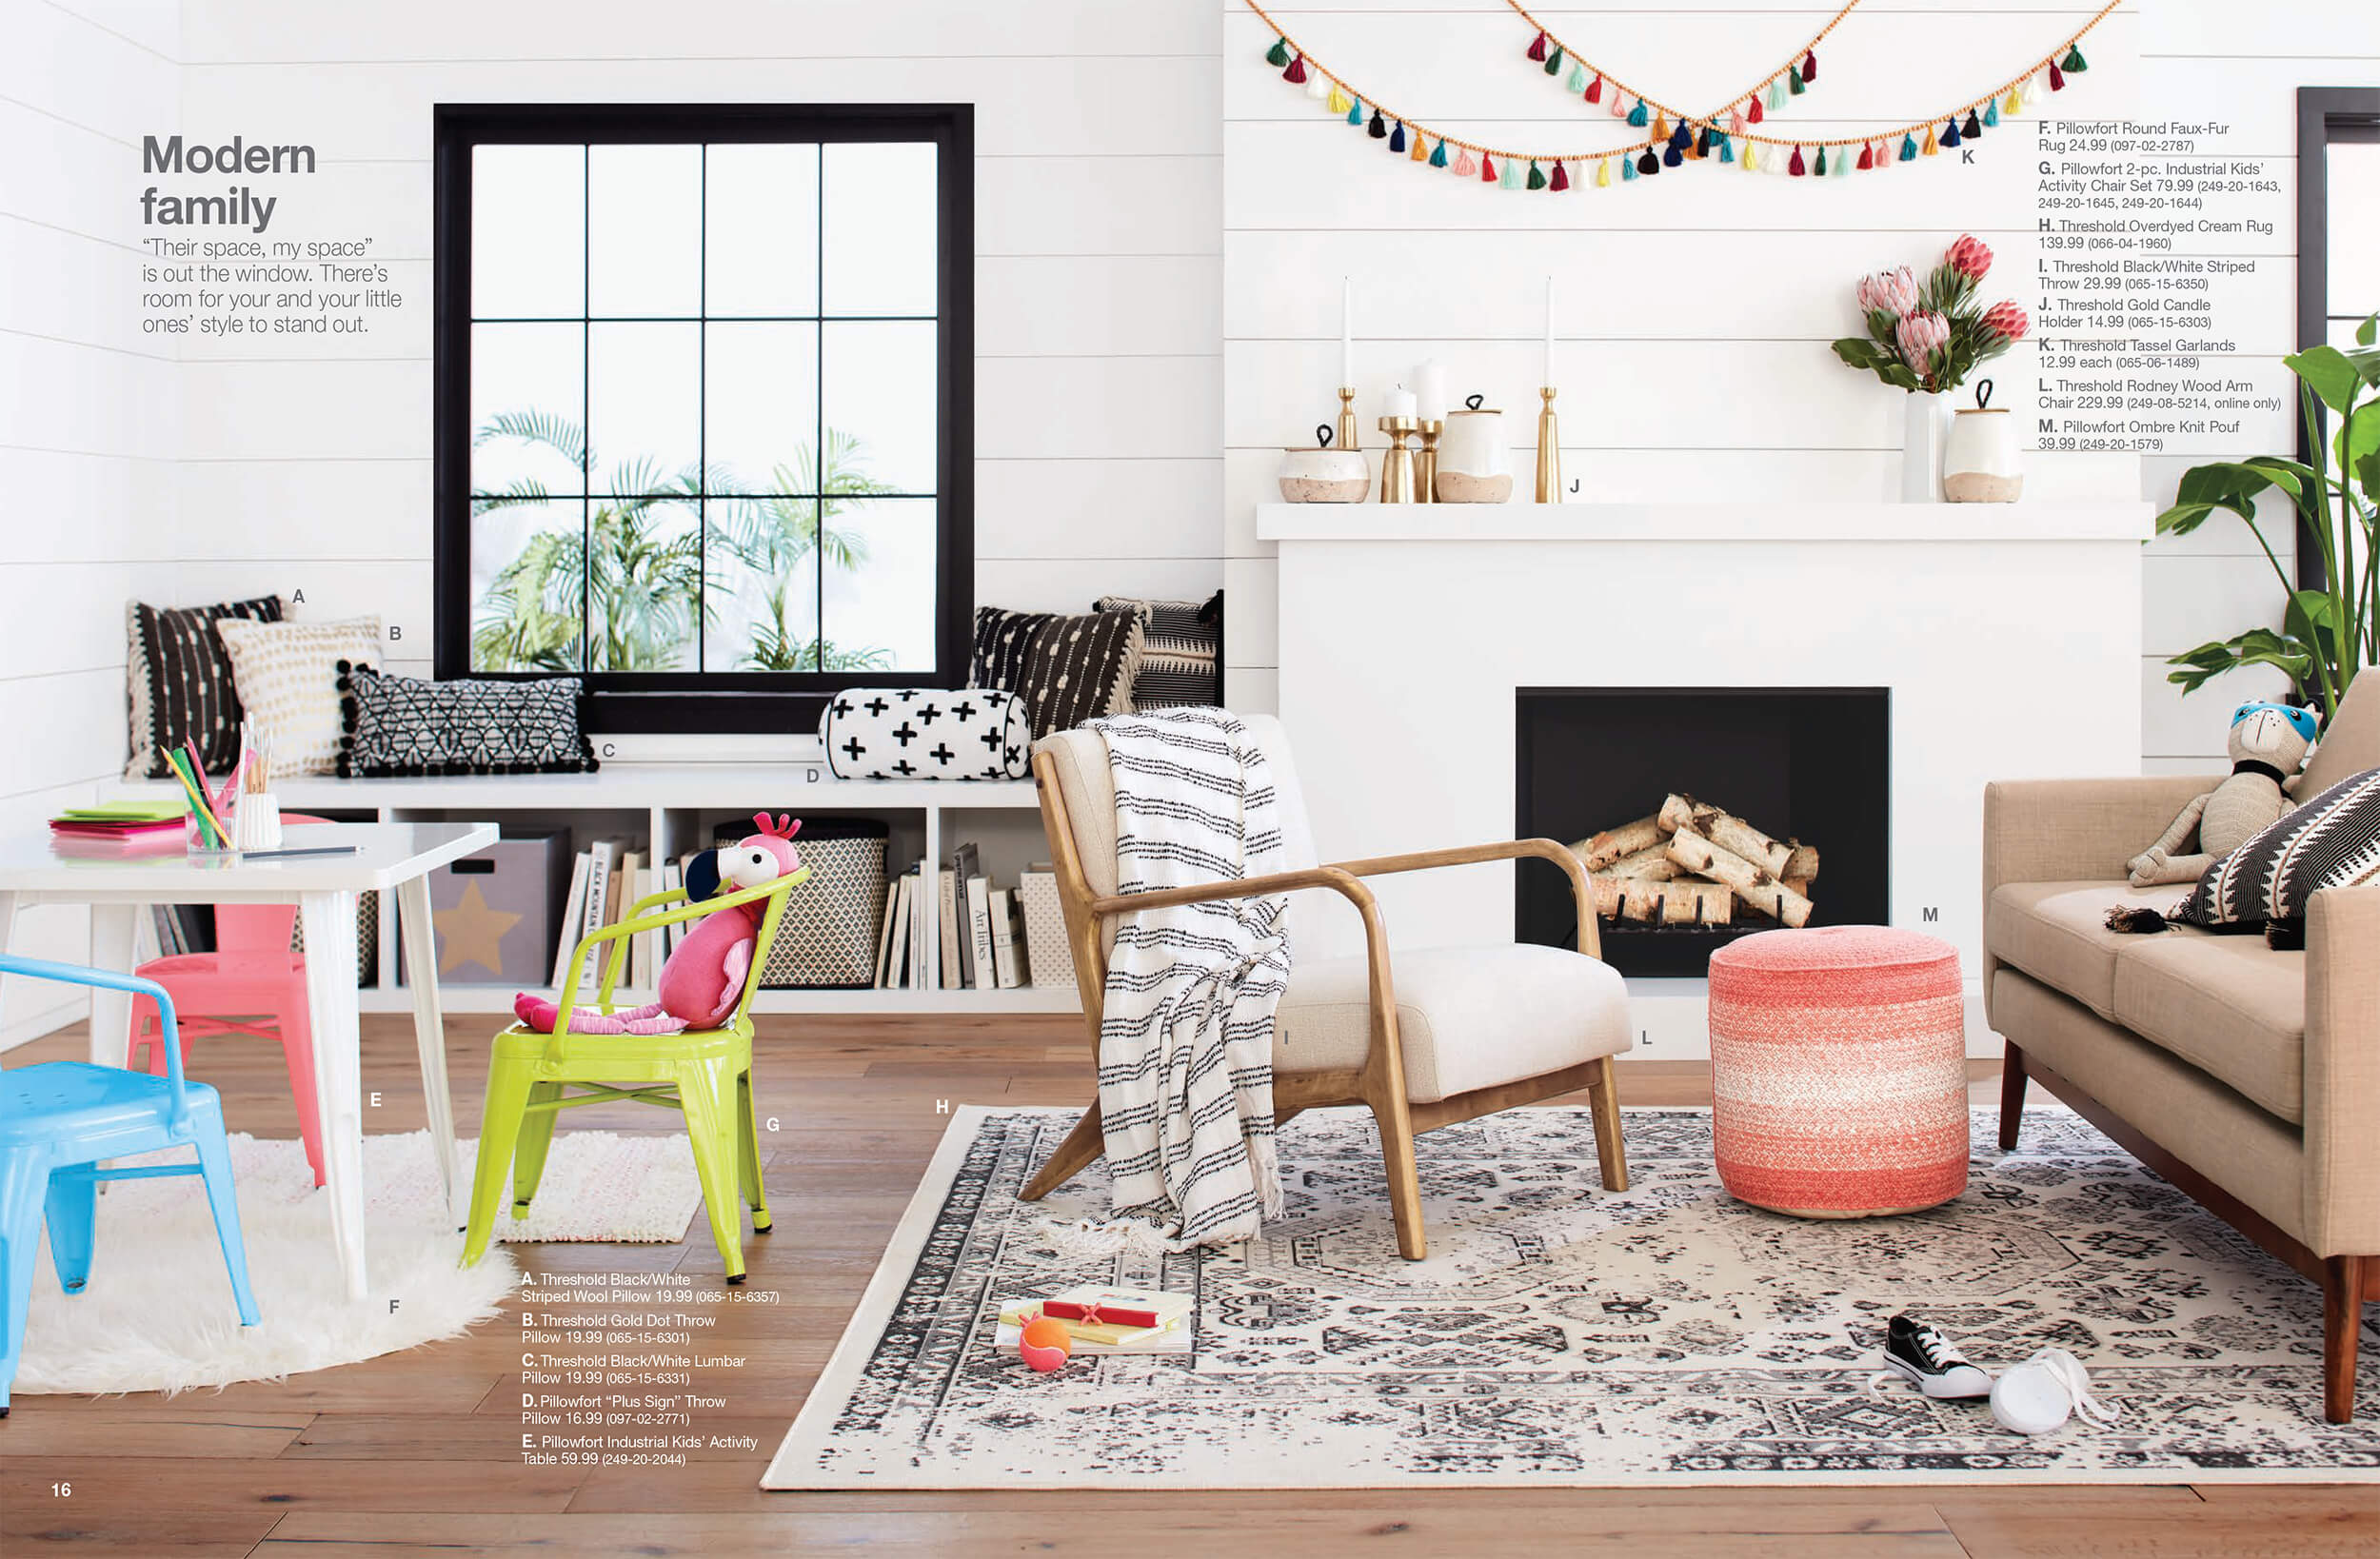 new target home product and emily henderson first look spring catalog threshold accent table used end tables marble top coffee pier giant patio umbrella glass lamp sofa side